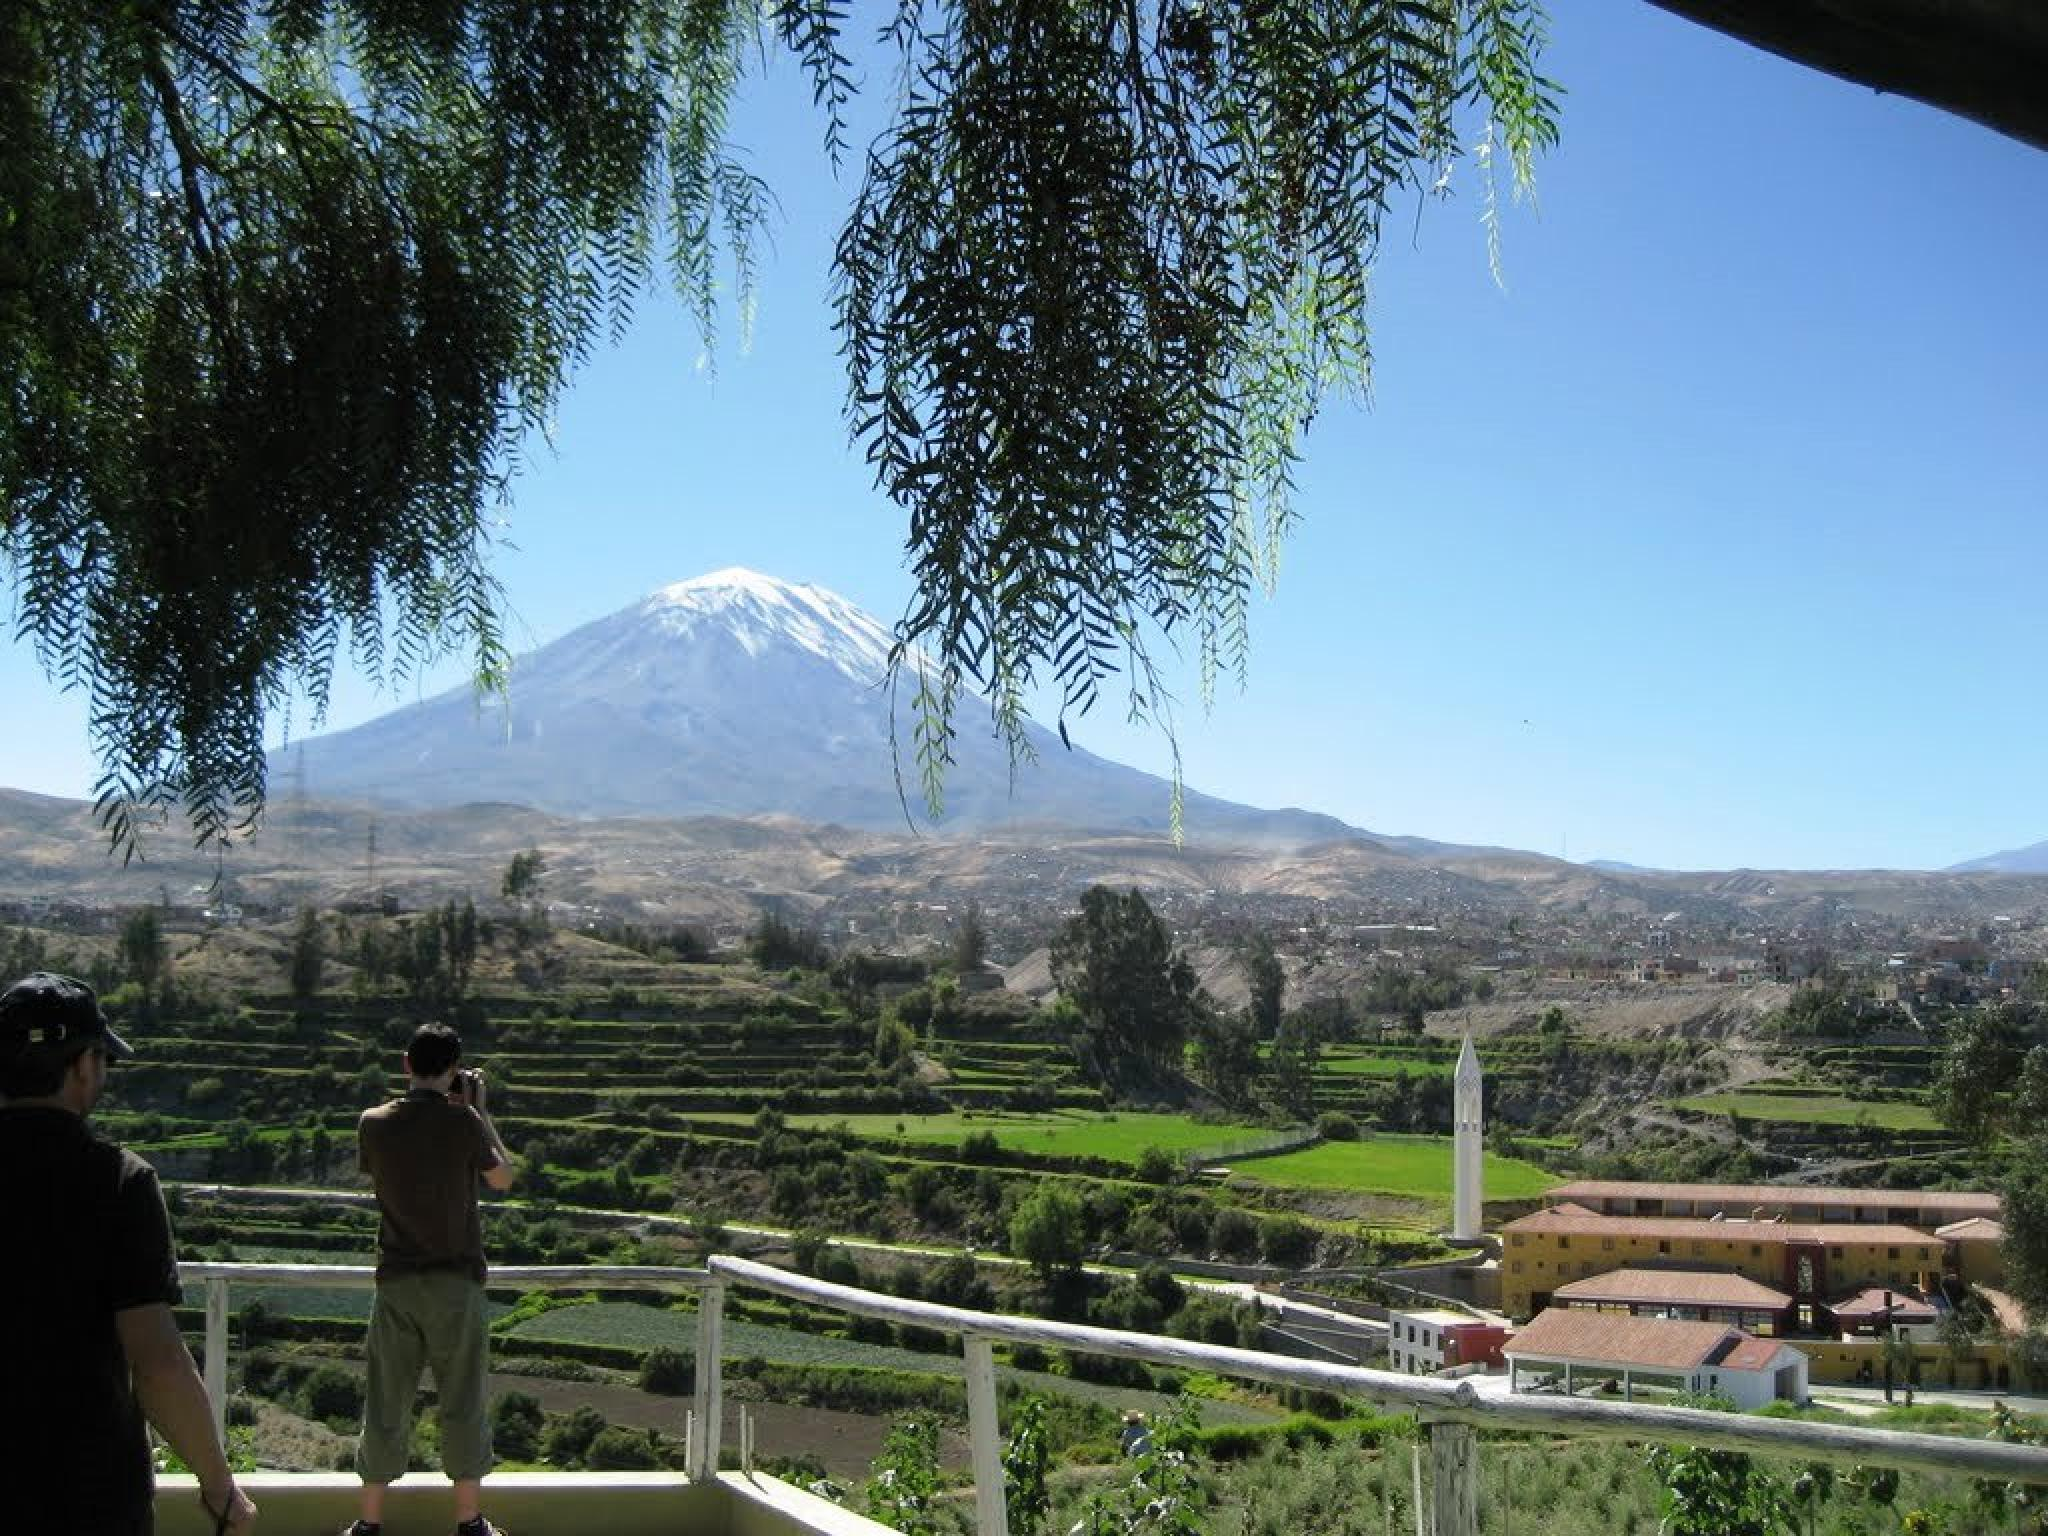 Arequipa Countryside and Santa Catalina Tour